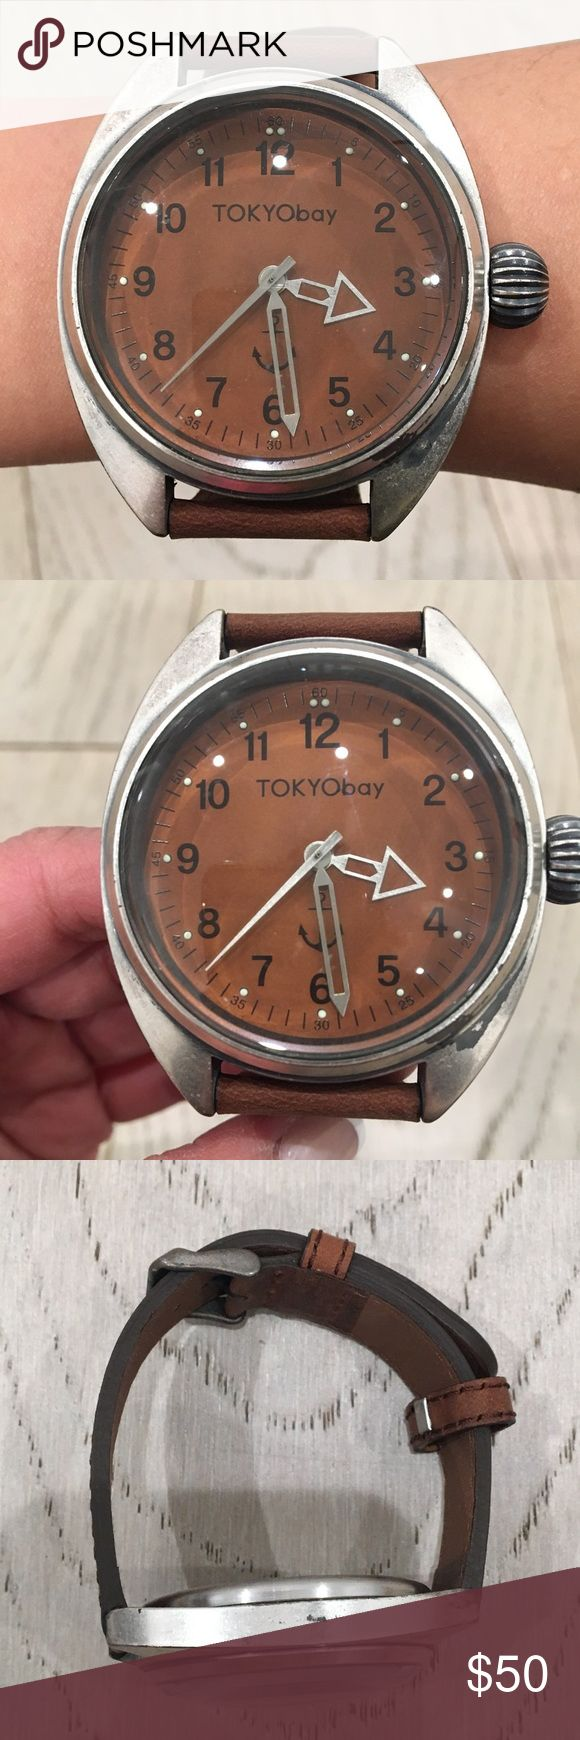 NWOT TOKYObay Brown Leather Watch Tokyo Bay watch with brown leather band. Battery needs to be replaced. No box. Smoke-free home. Sorry no trades. Bundle and save 10%. Offers accepted. TOKYObay Accessories Watches